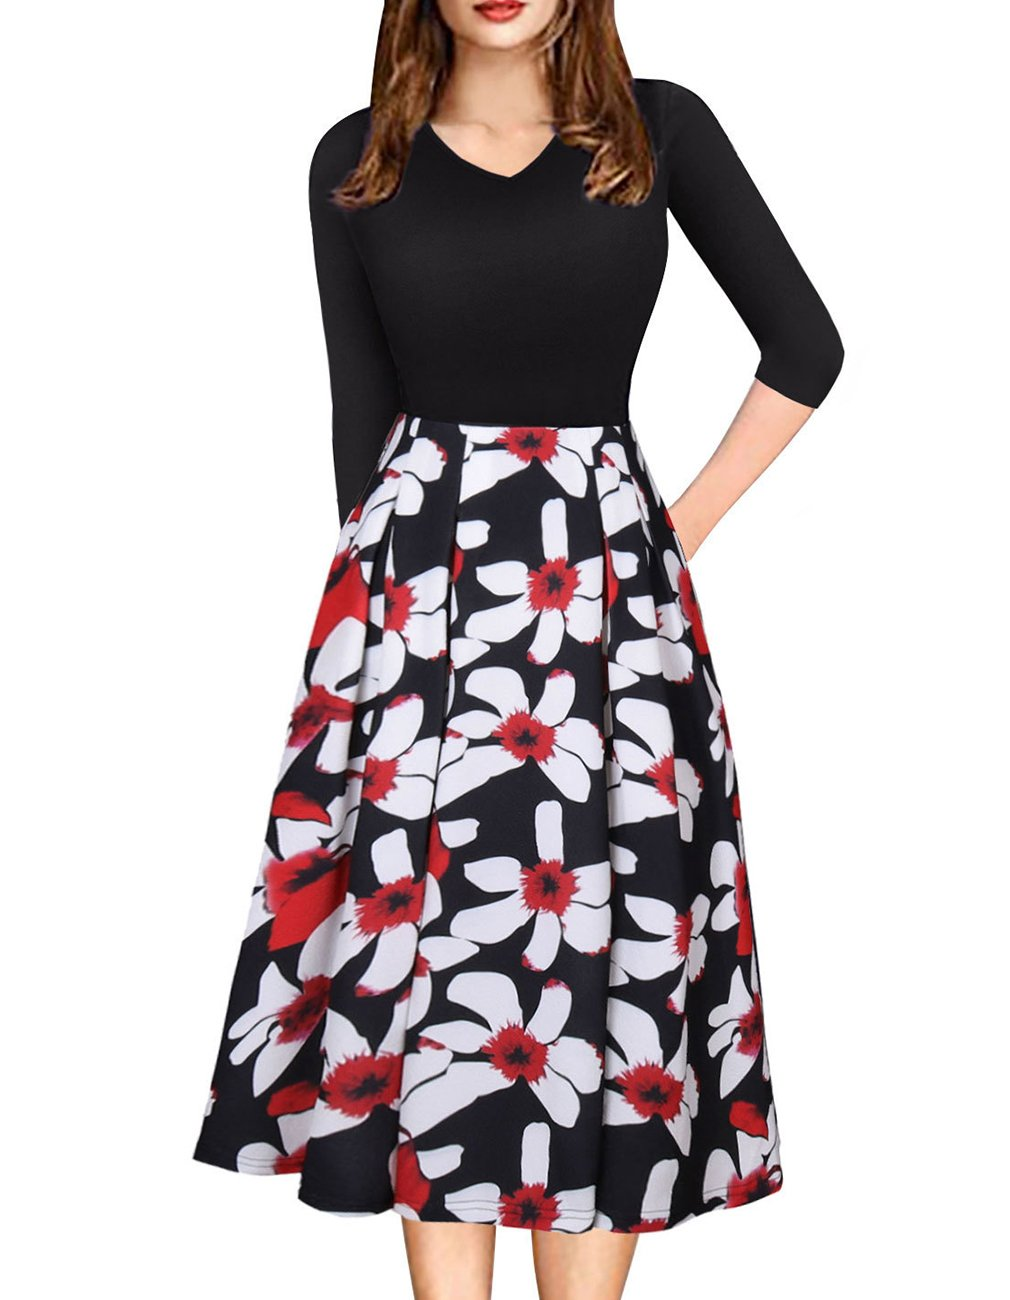 Womens Vintage 3/4 Sleeve Bohemia Floral Midi Patchwork Dress Puffy Swing Casual Party Evening Dress with Pocket (Black,M)